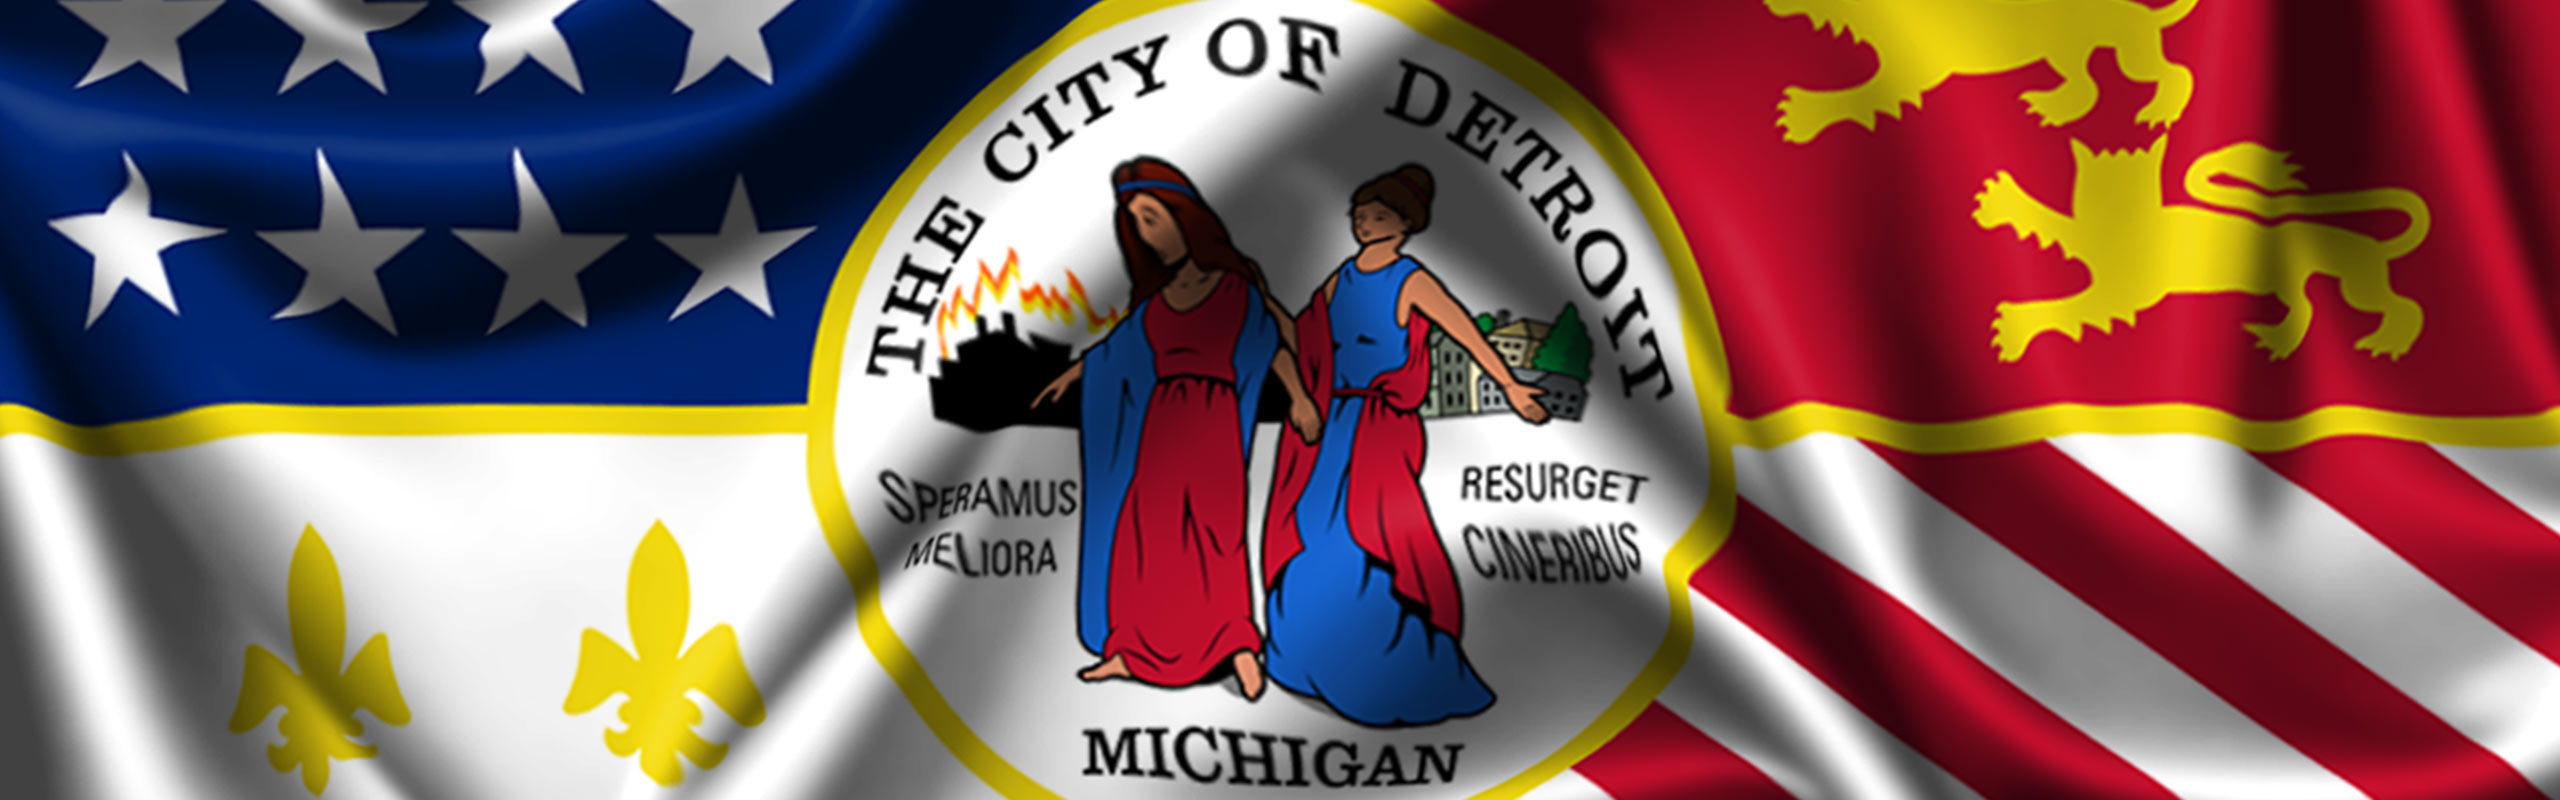 flag of detroit